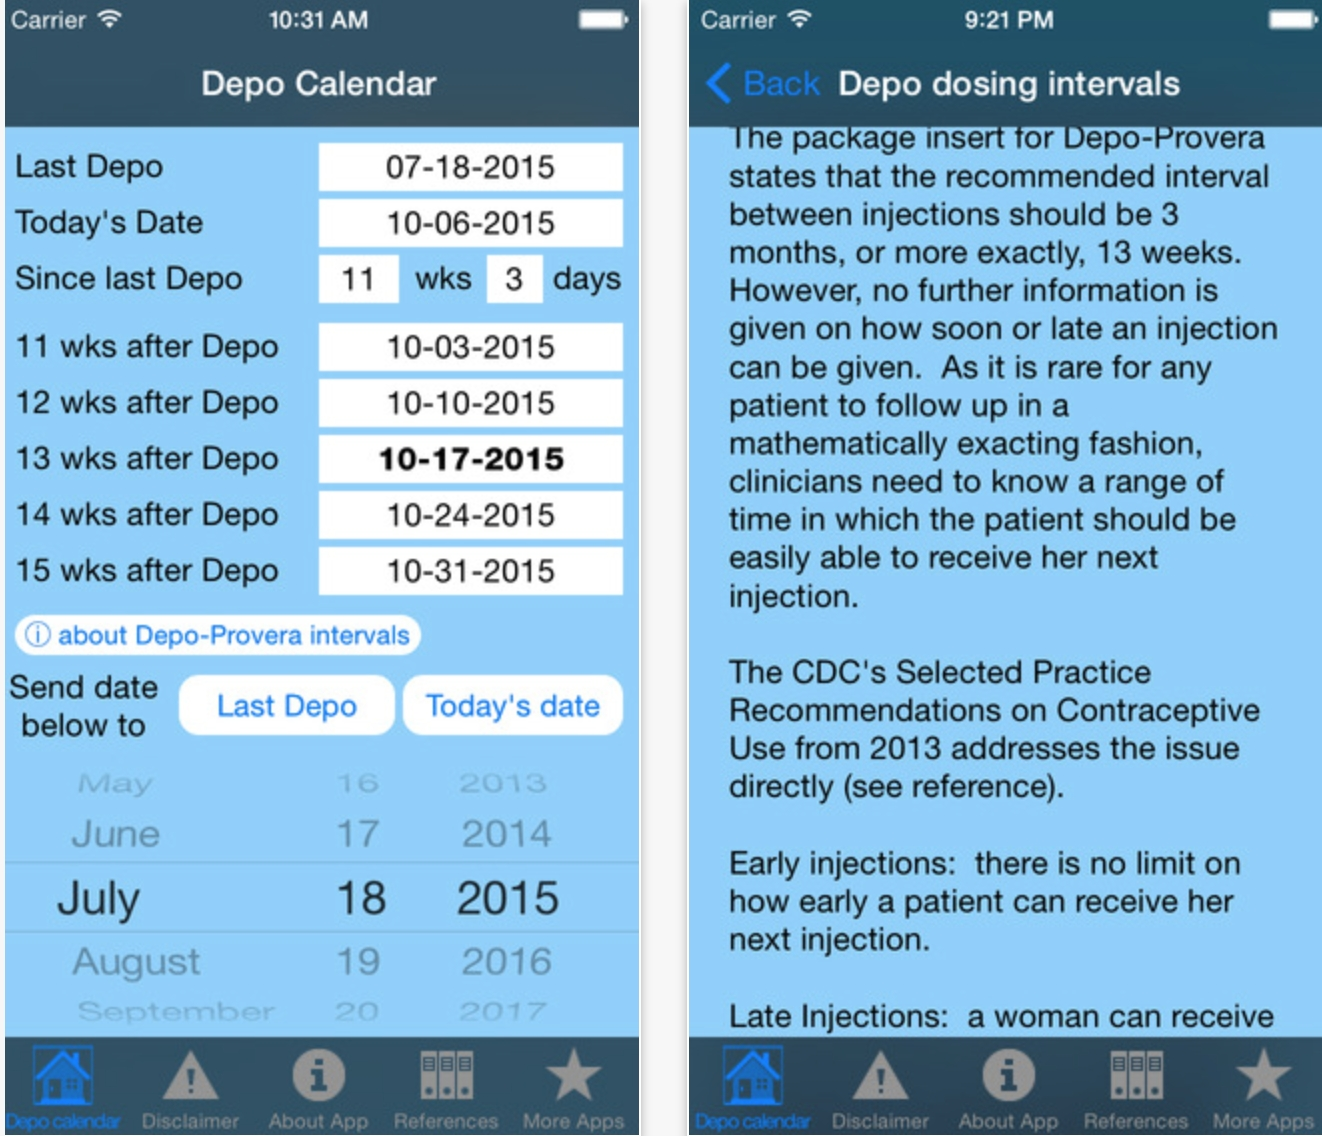 Depo Calendar App Could Significantly Improve Contraception  When Is Depo Injection Schedule